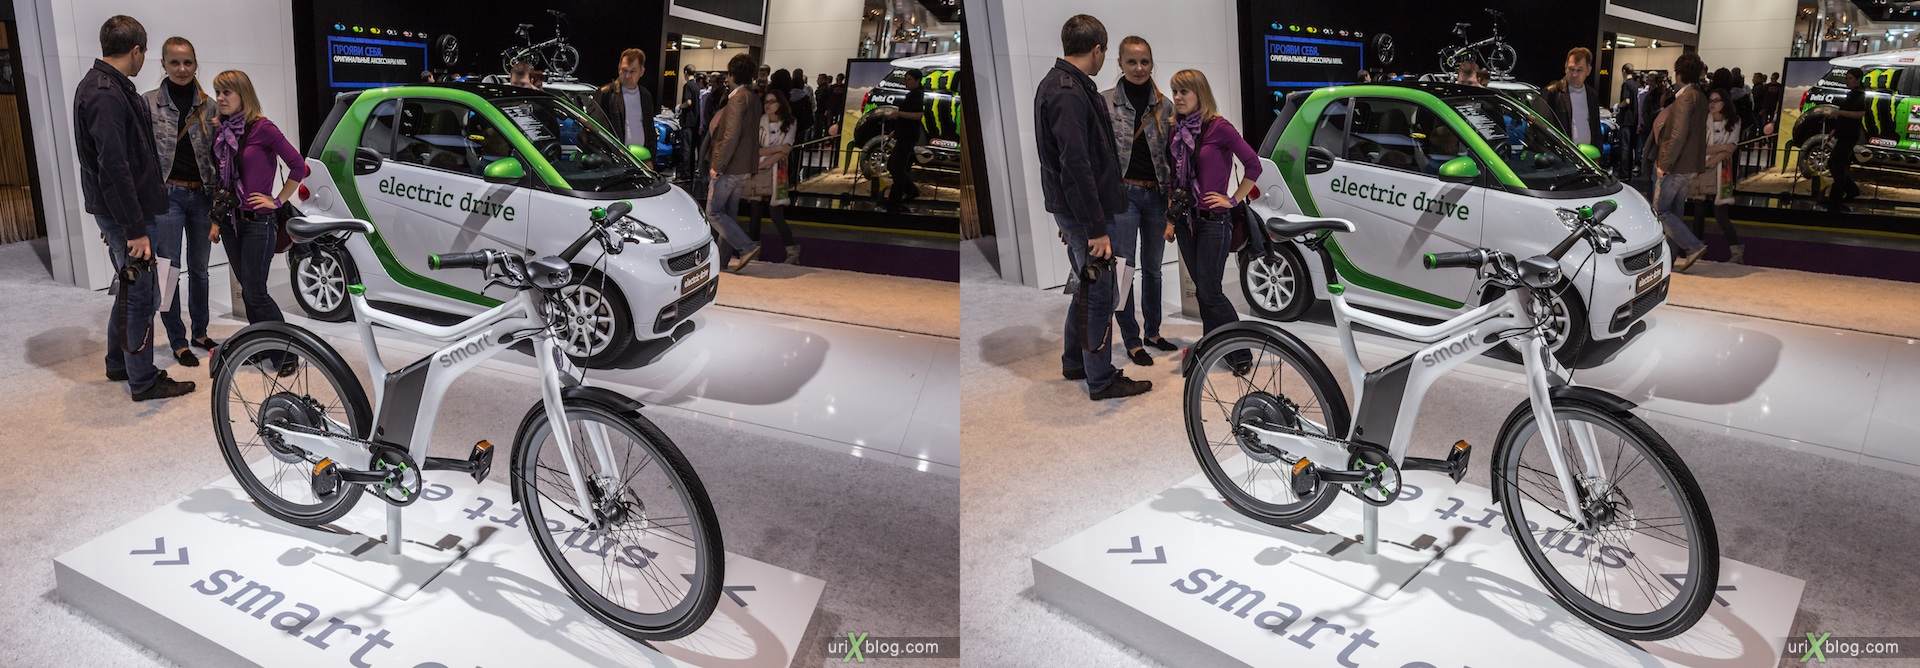 2012, Smart electric bike, Moscow International Automobile Salon, auto show, 3D, stereo pair, cross-eyed, crossview